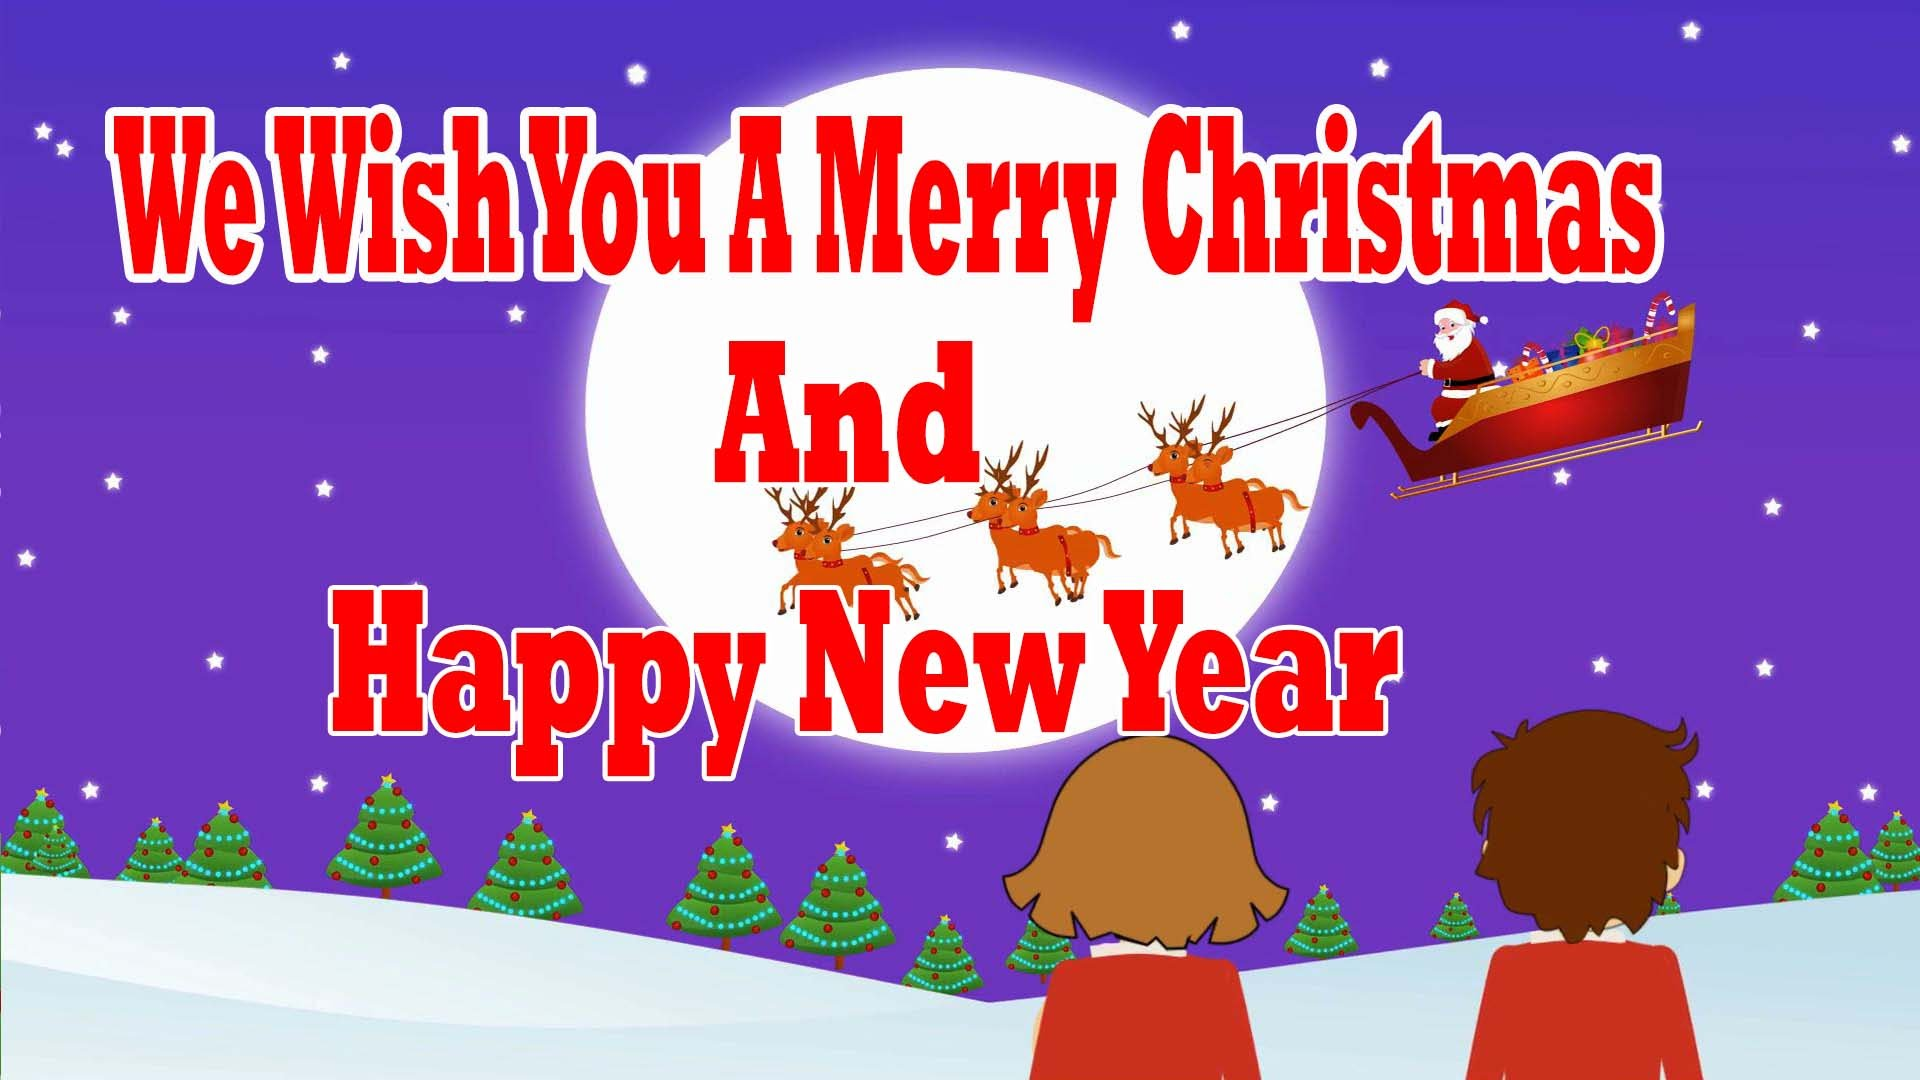 Merry Christmas and Happy New Year 2019, Merry Christmas